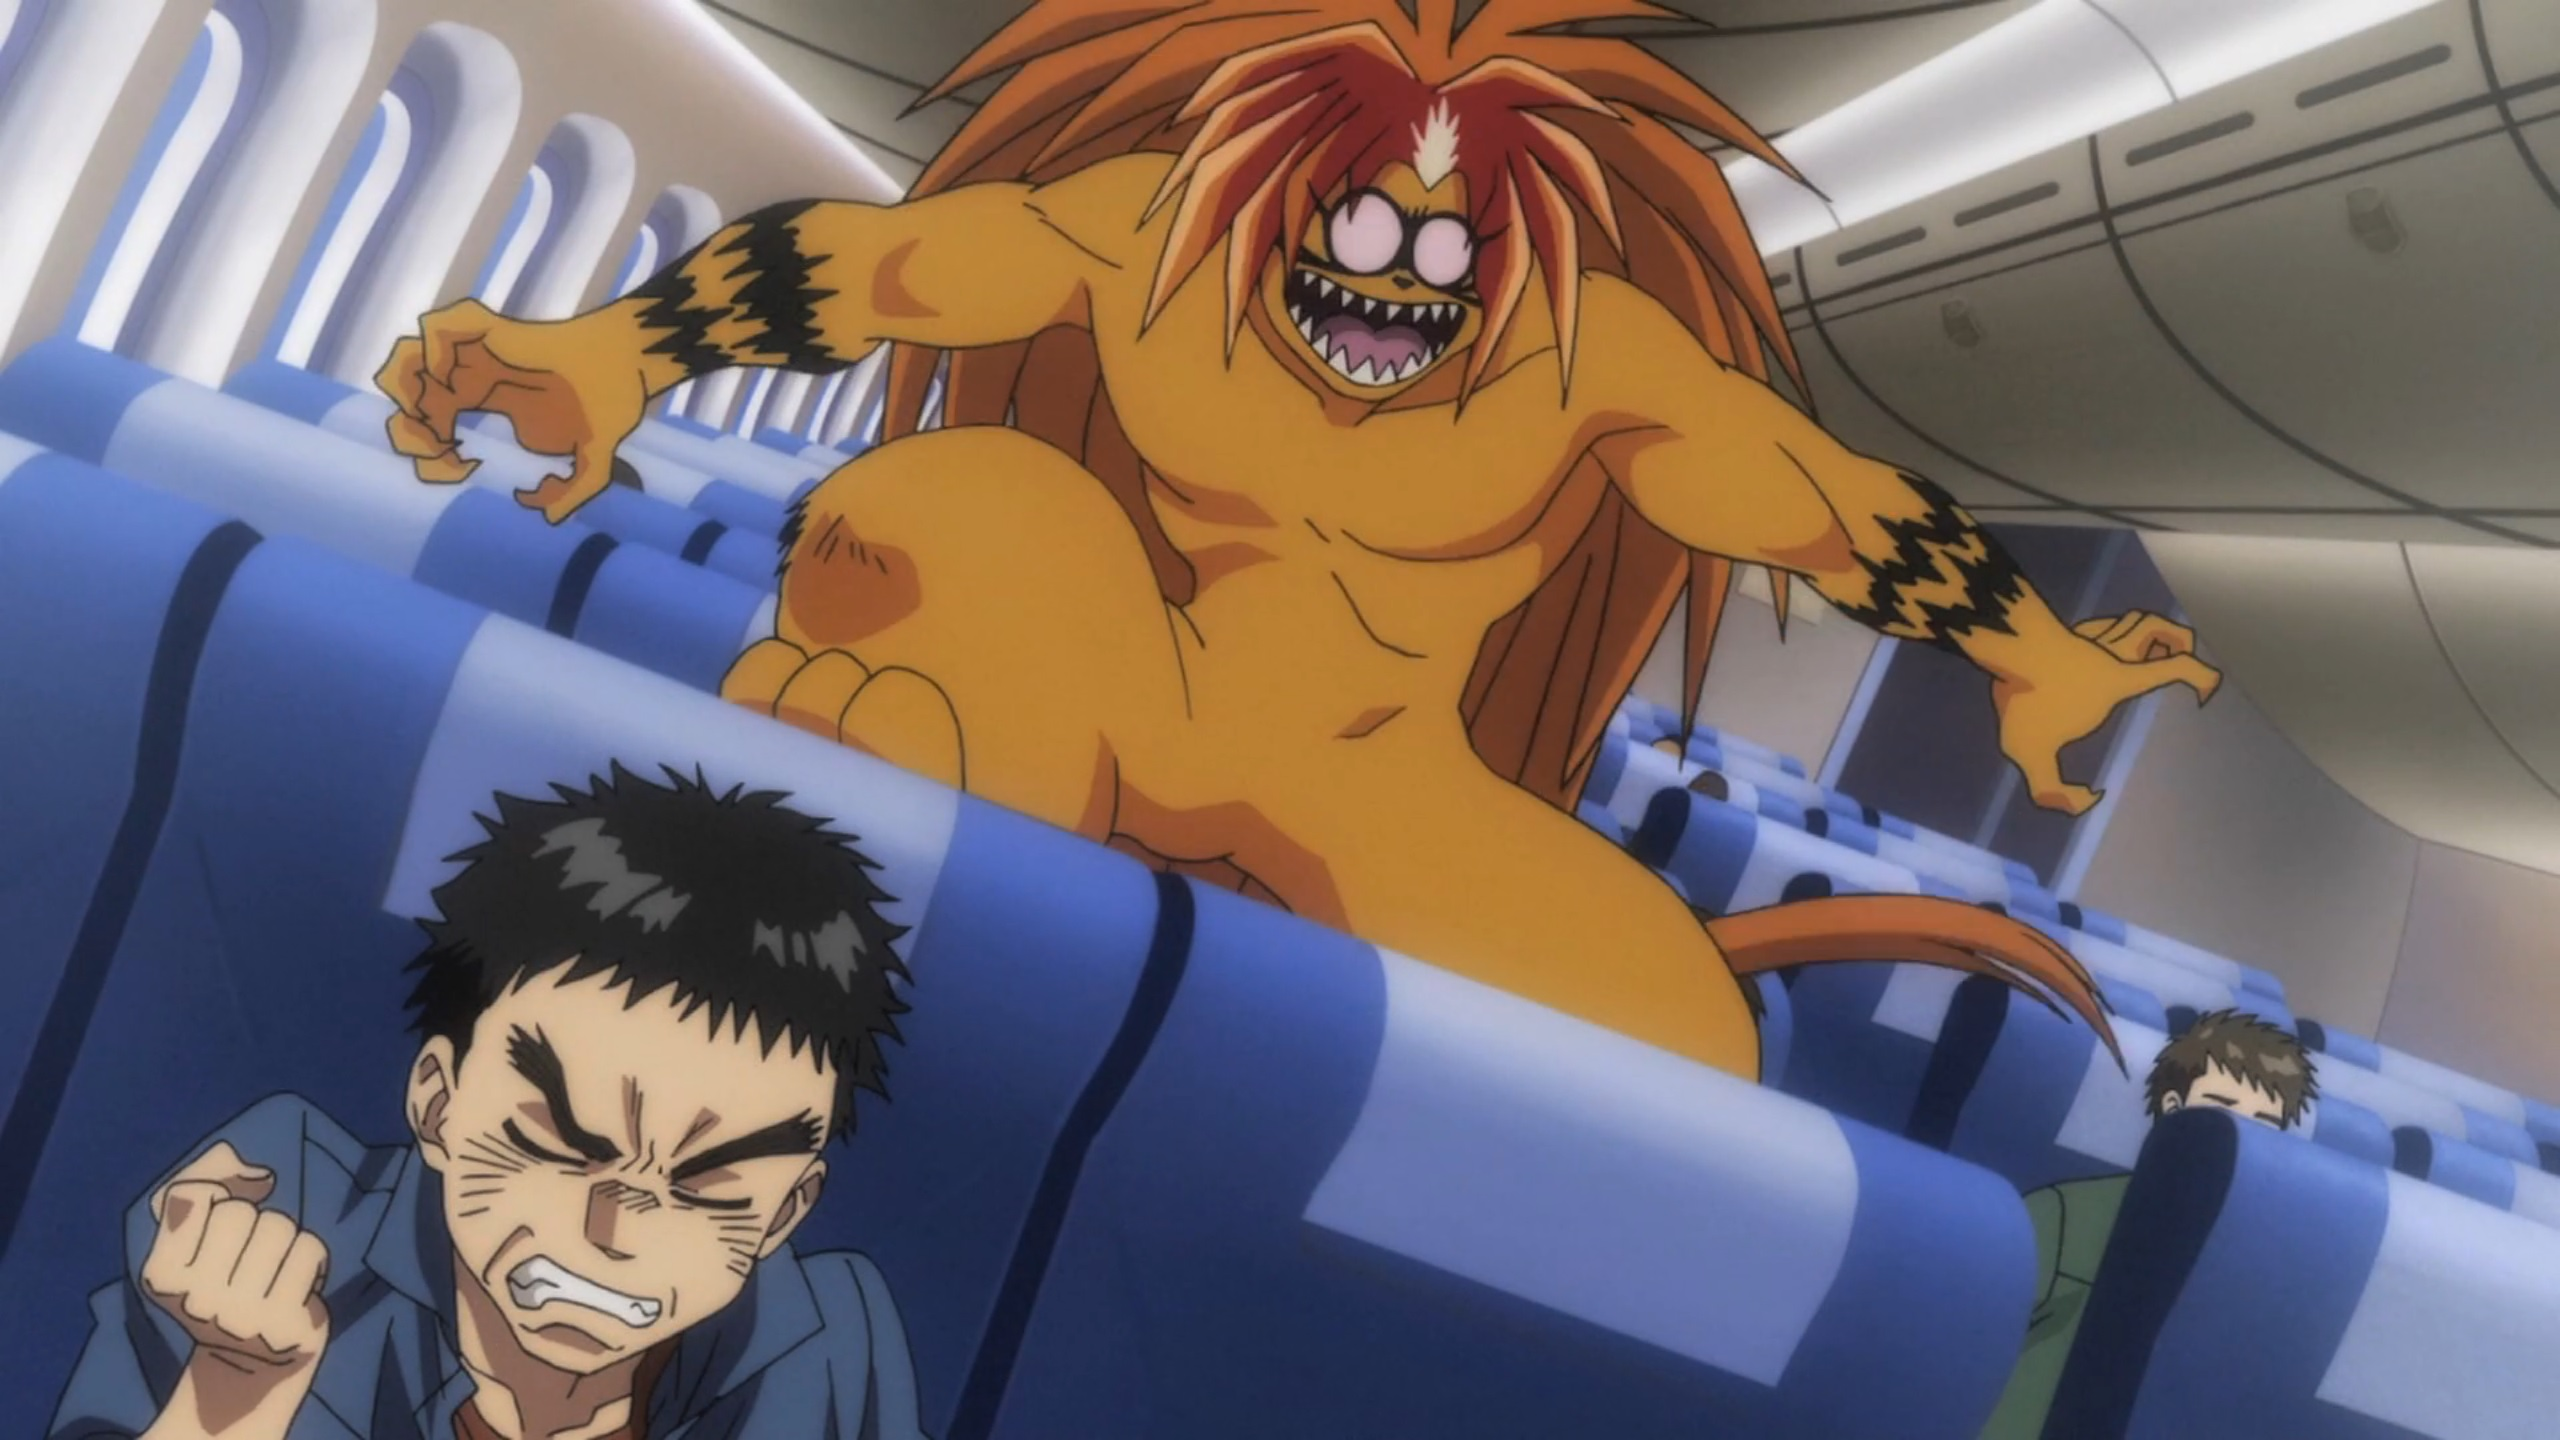 Tora gets excited to ride a plane in Ushio and Tora.